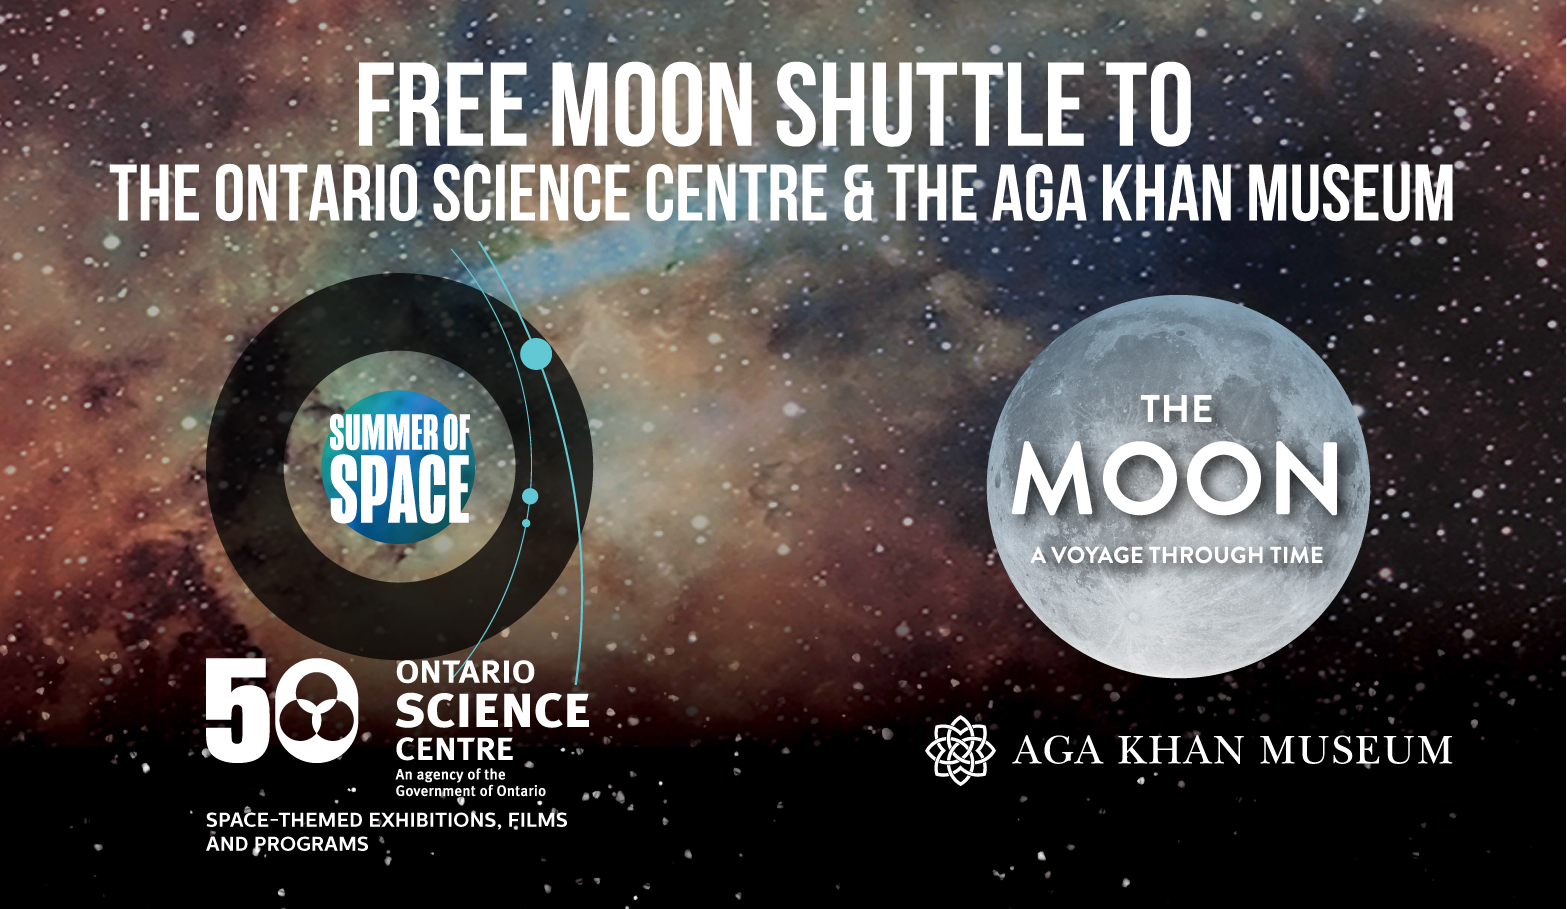 The Ontario Science Centre logo beside a moon and Aga Khan Museum logo, both against a starry outer space backdrop